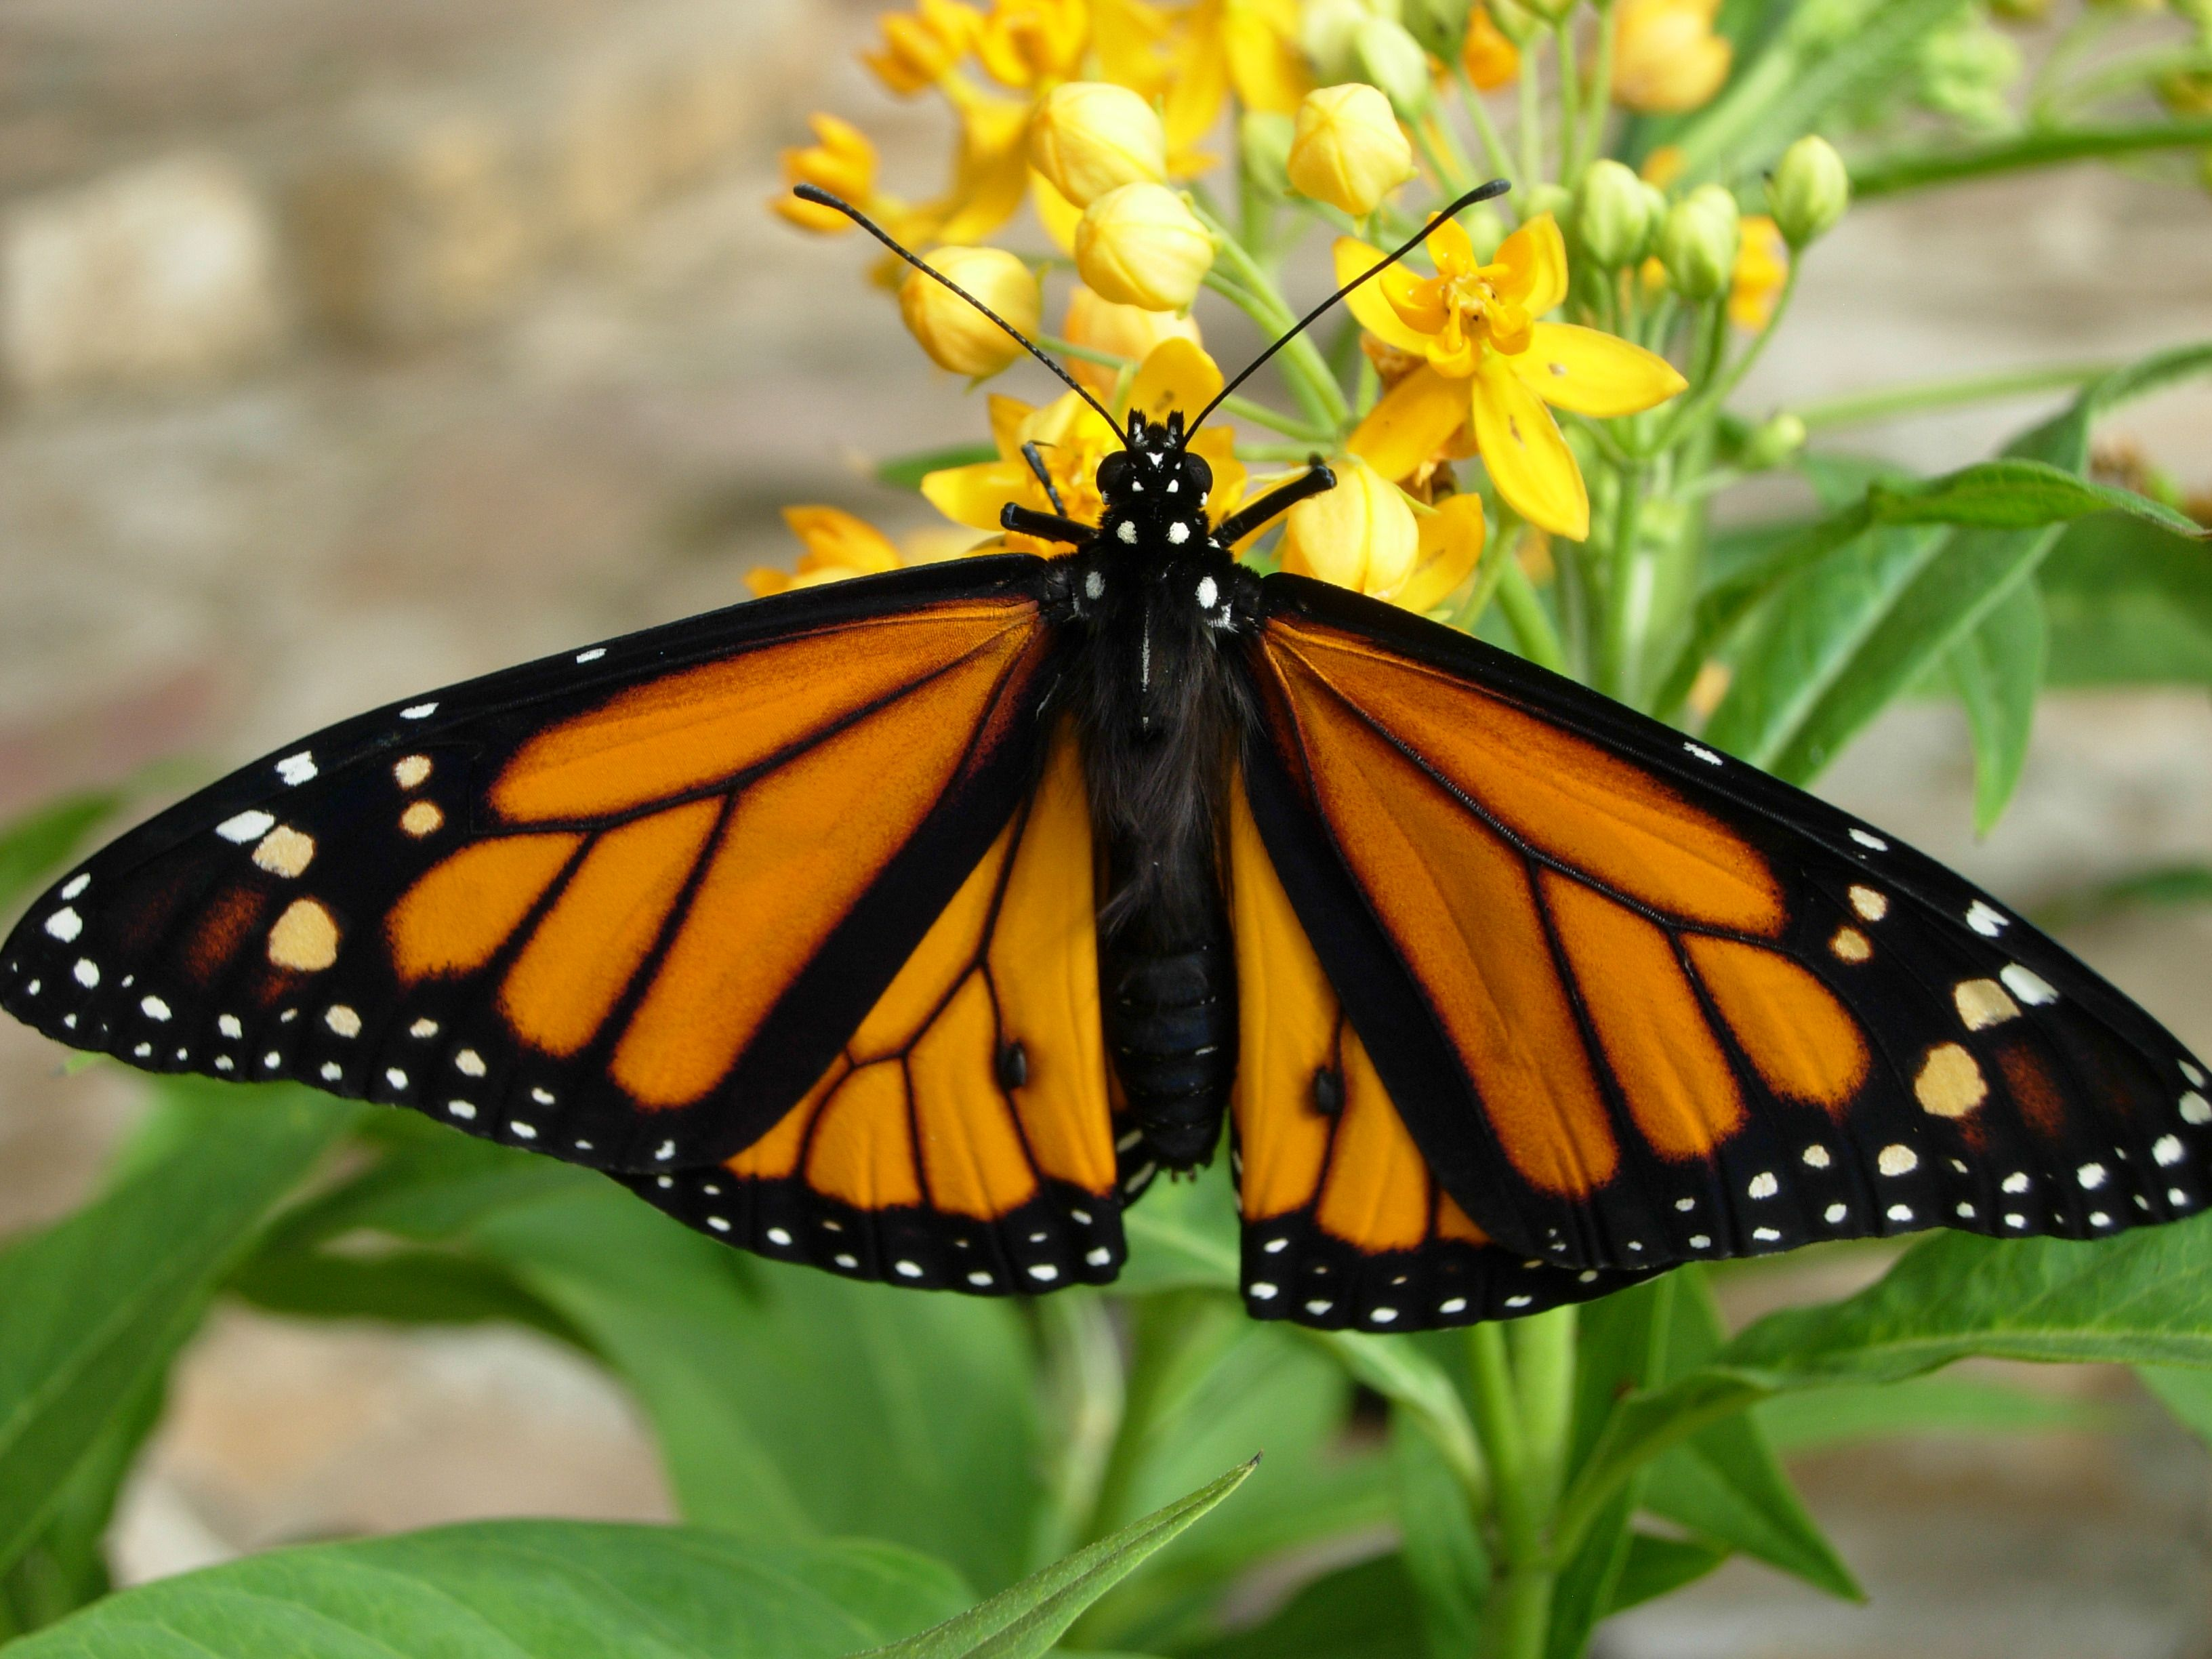 How To Tag Monarch Butterflies A Timely Question As Peak